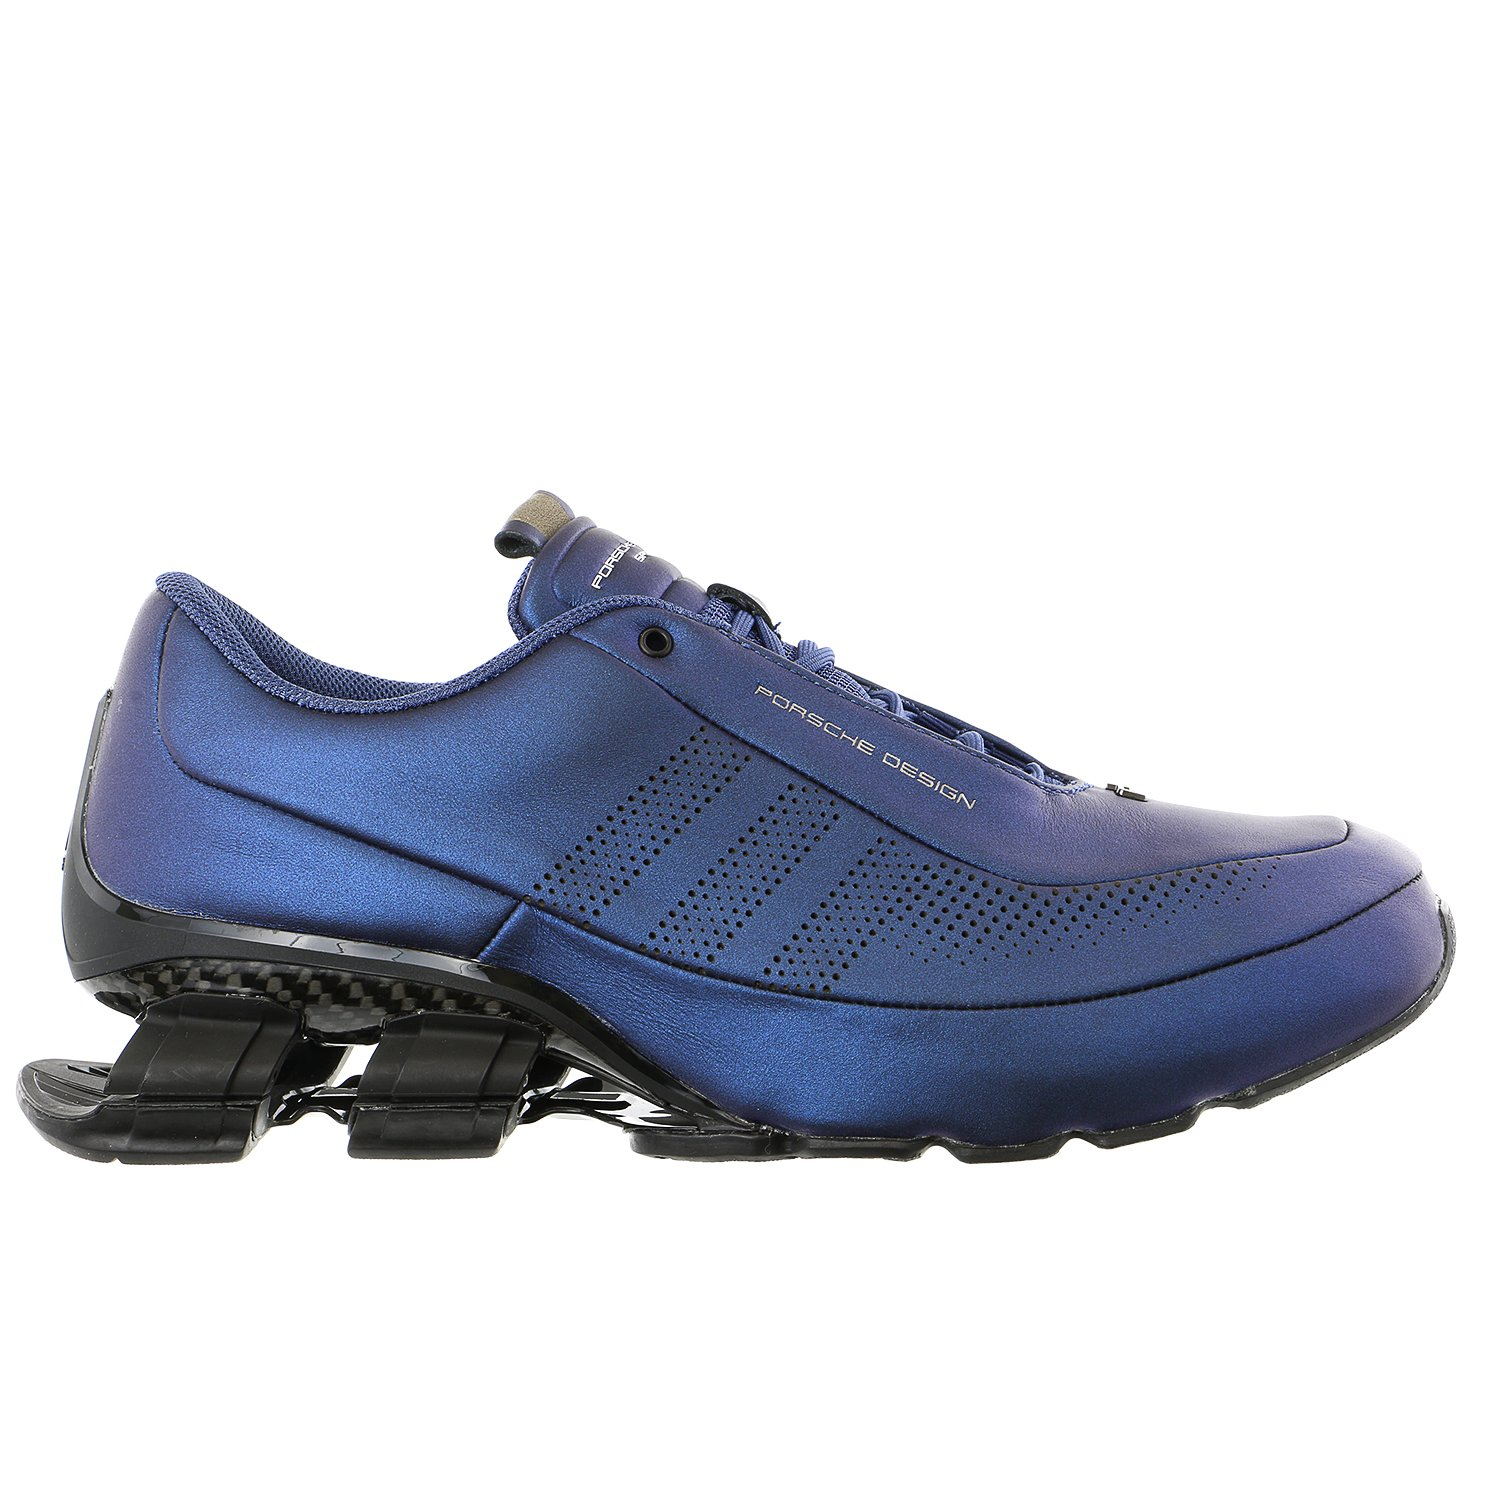 Porsche Design Adidas Bounce S4 Leather Driving Fashion Running Sneaker - Electric Blue - Mens - 10.5